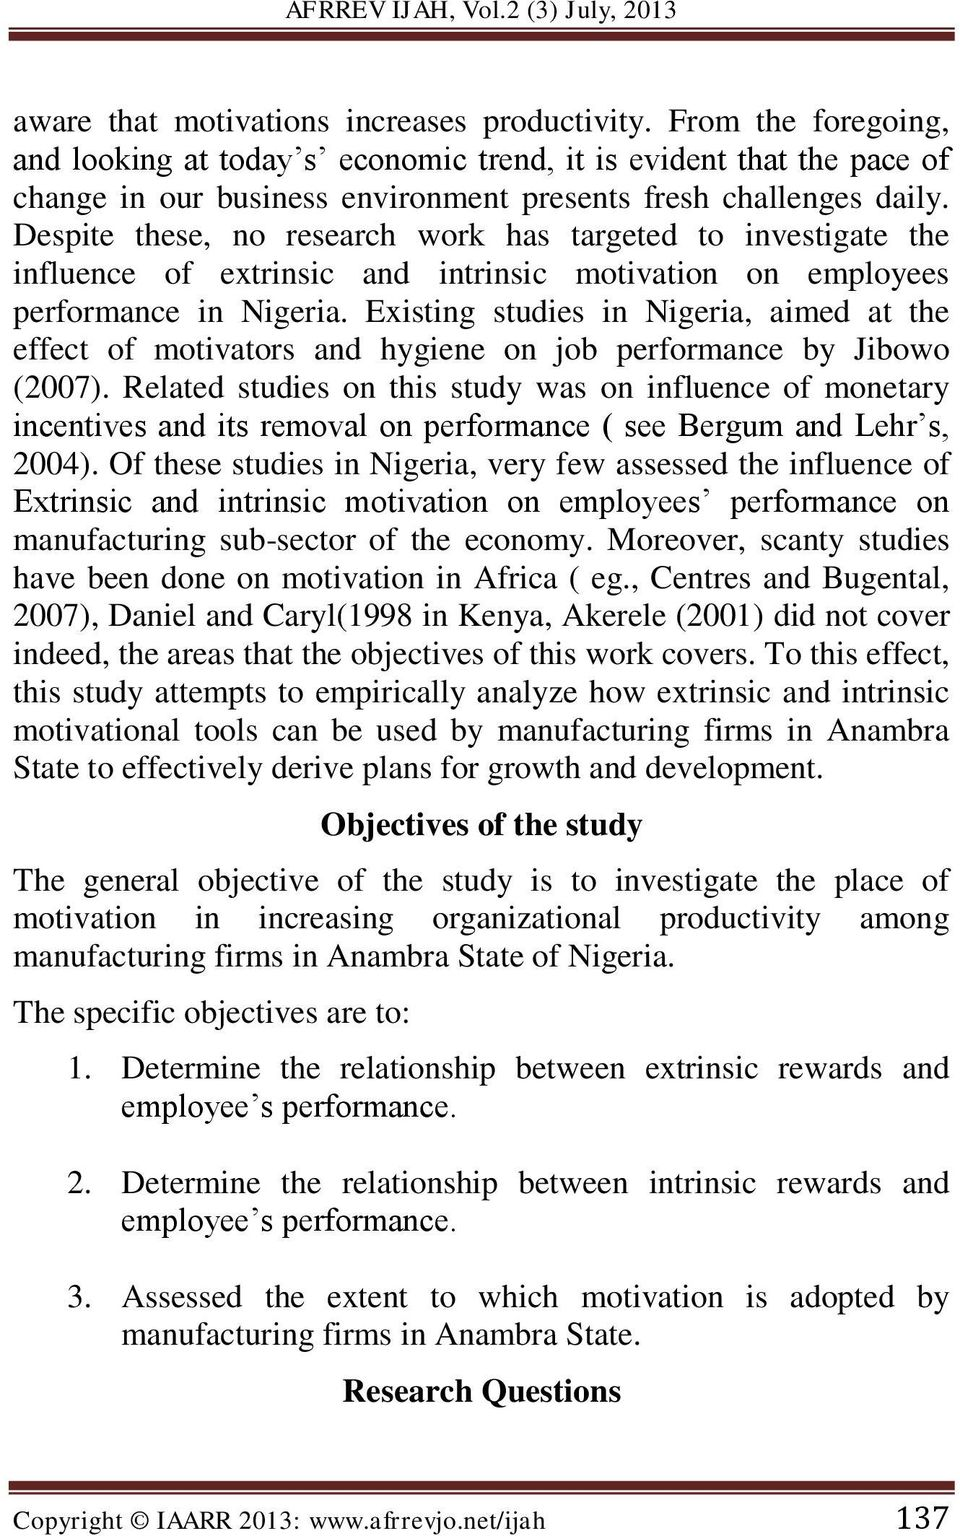 Despite these, no research work has targeted to investigate the influence of extrinsic and intrinsic motivation on employees performance in Nigeria.